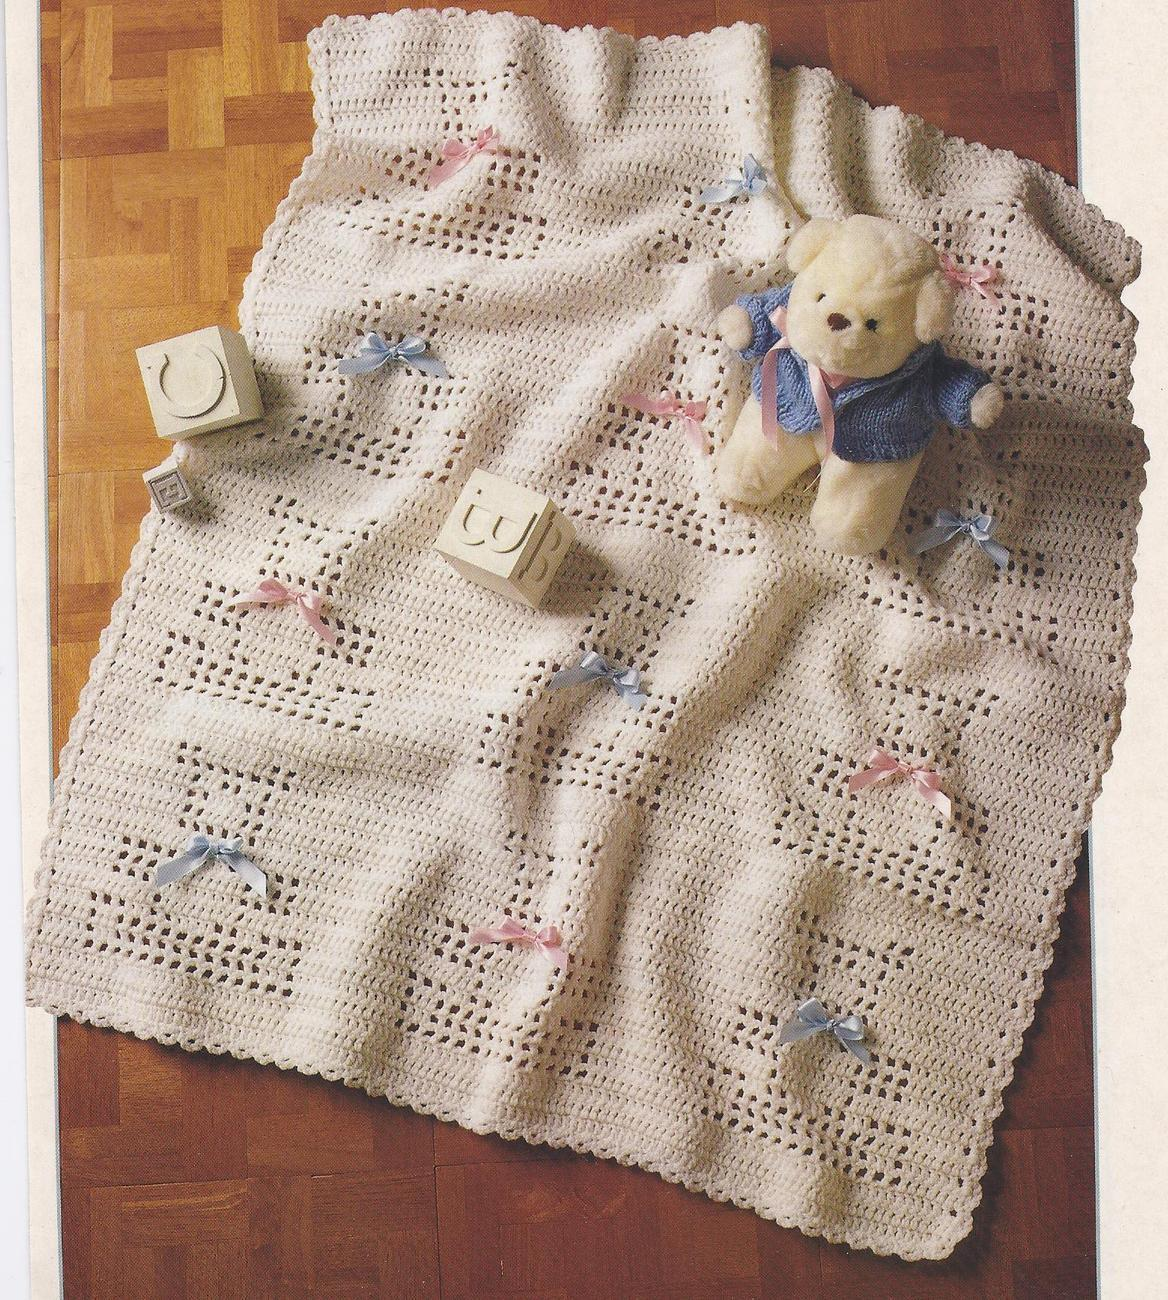 Free Teddy Bear Filet Crochet Afghan Pattern : Baby Teddy Bear Afghan Filet Crochet Pattern - Baby & Children